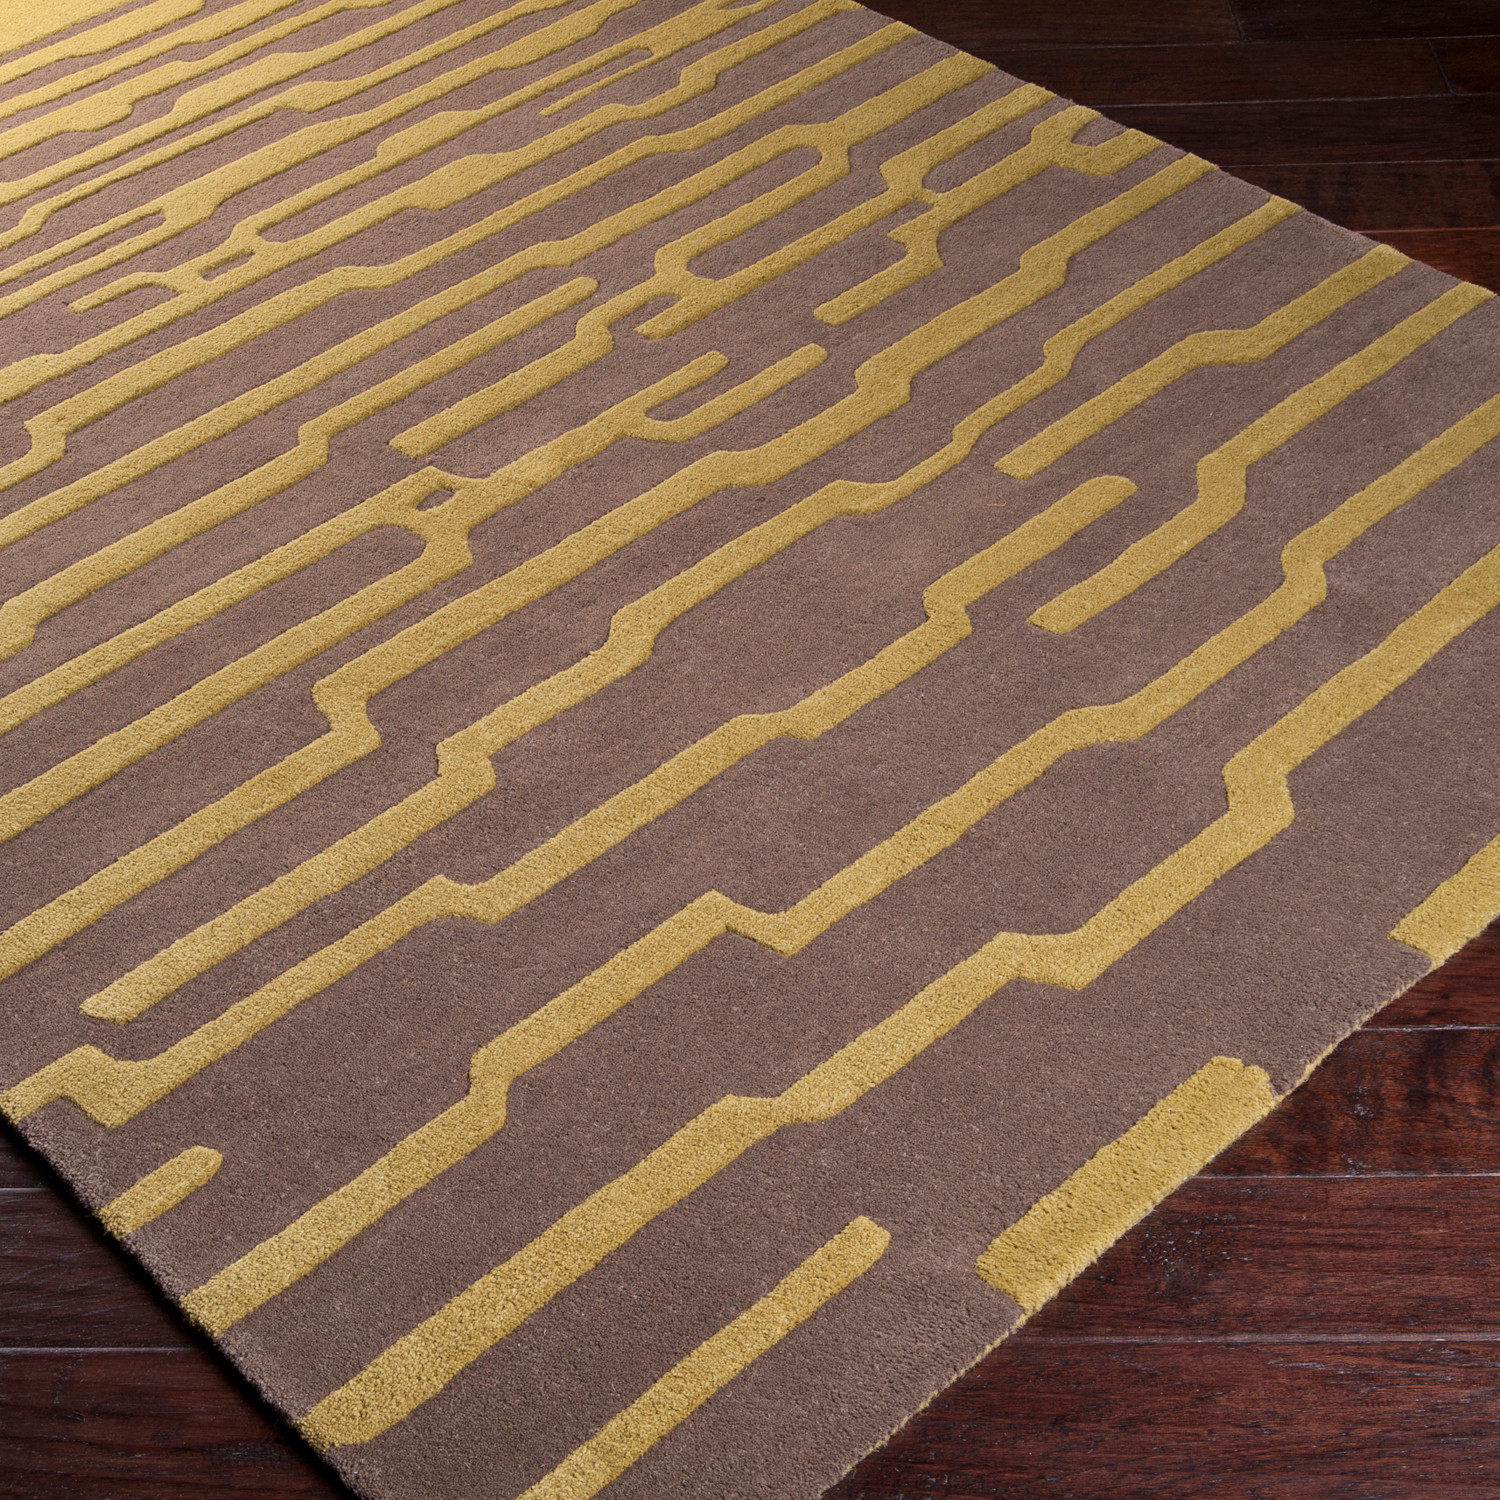 Hessian Rugs Harlequin Taupe Olive 5 X 8 Surya Rugs Touch Of Modern